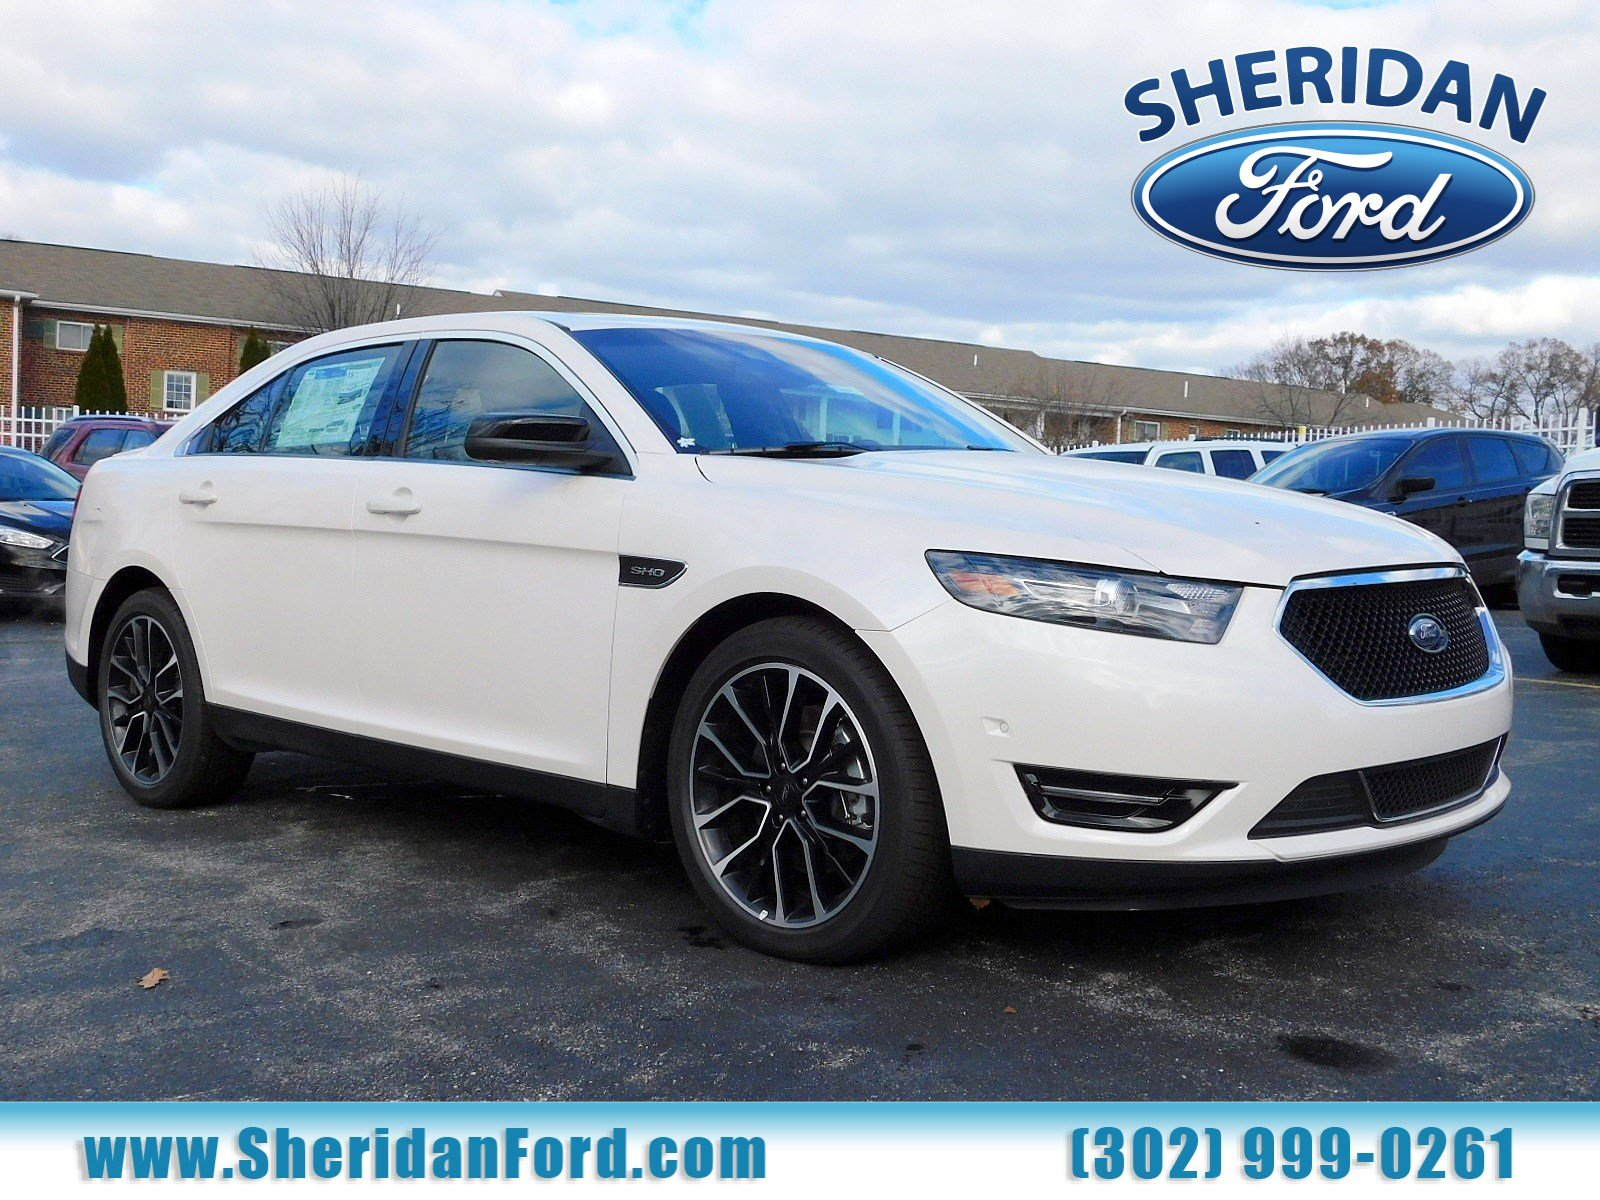 New 2018 ford taurus sho